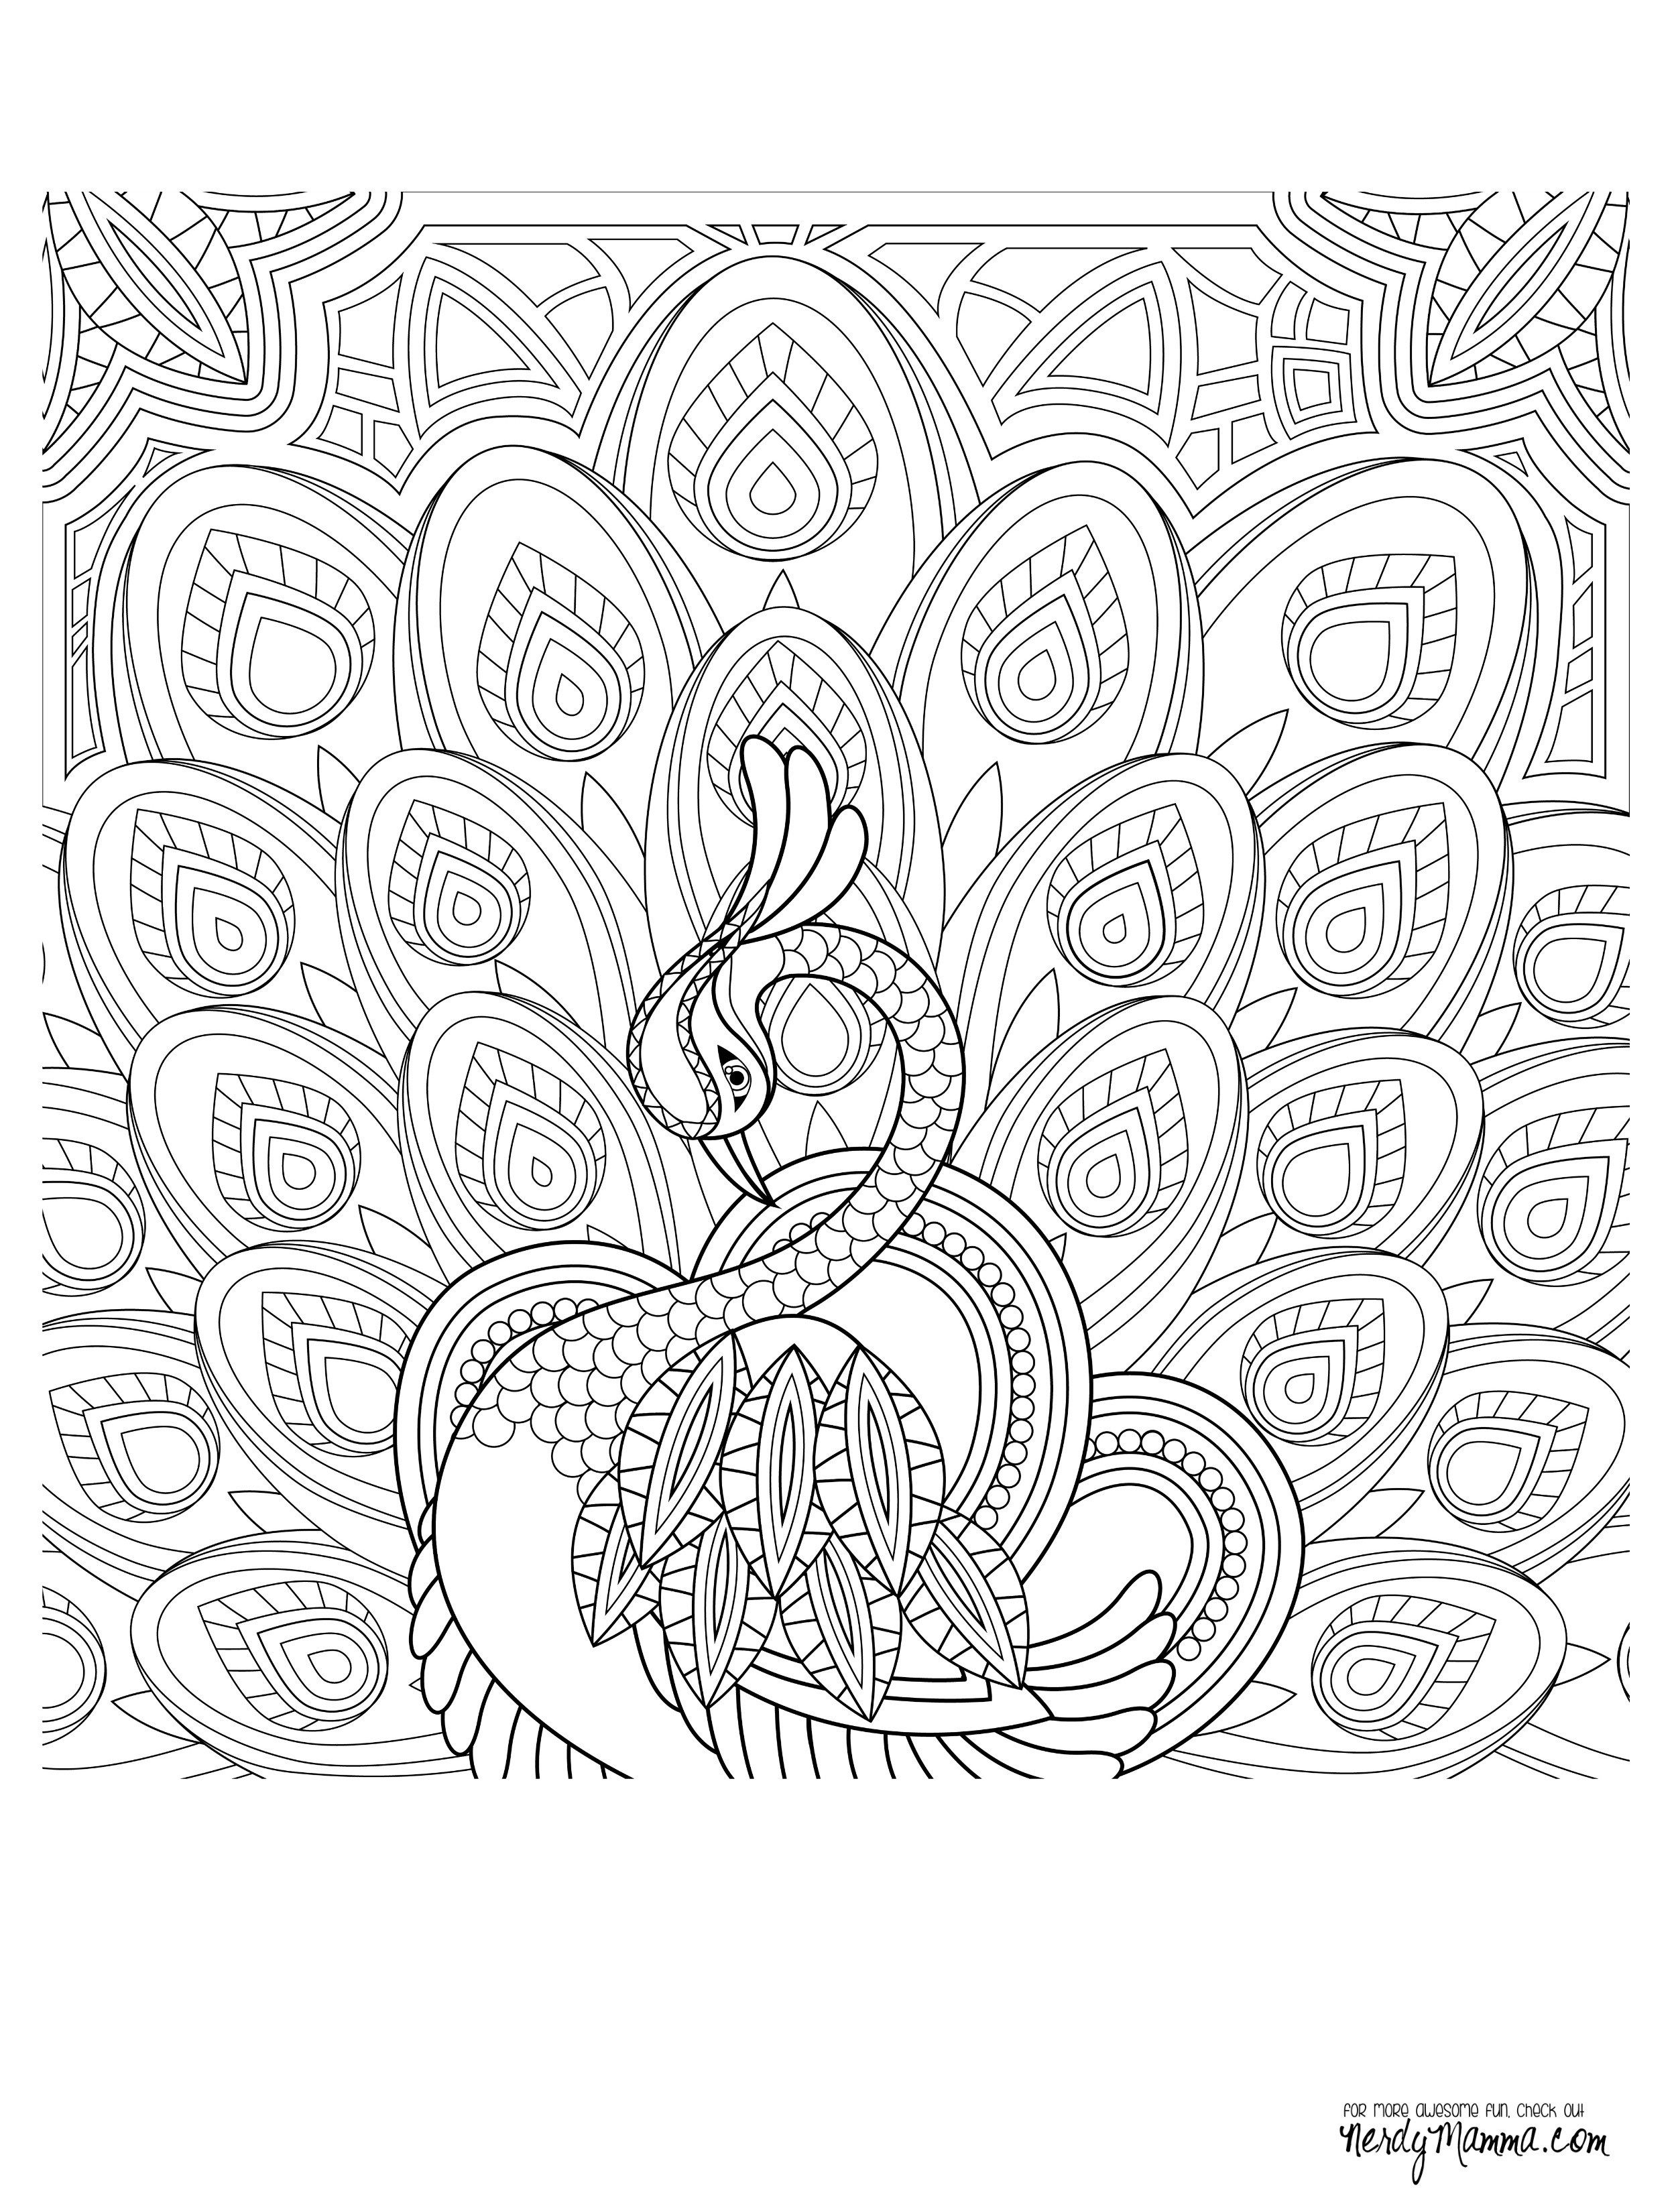 Coloring Antistress Coloring Pages